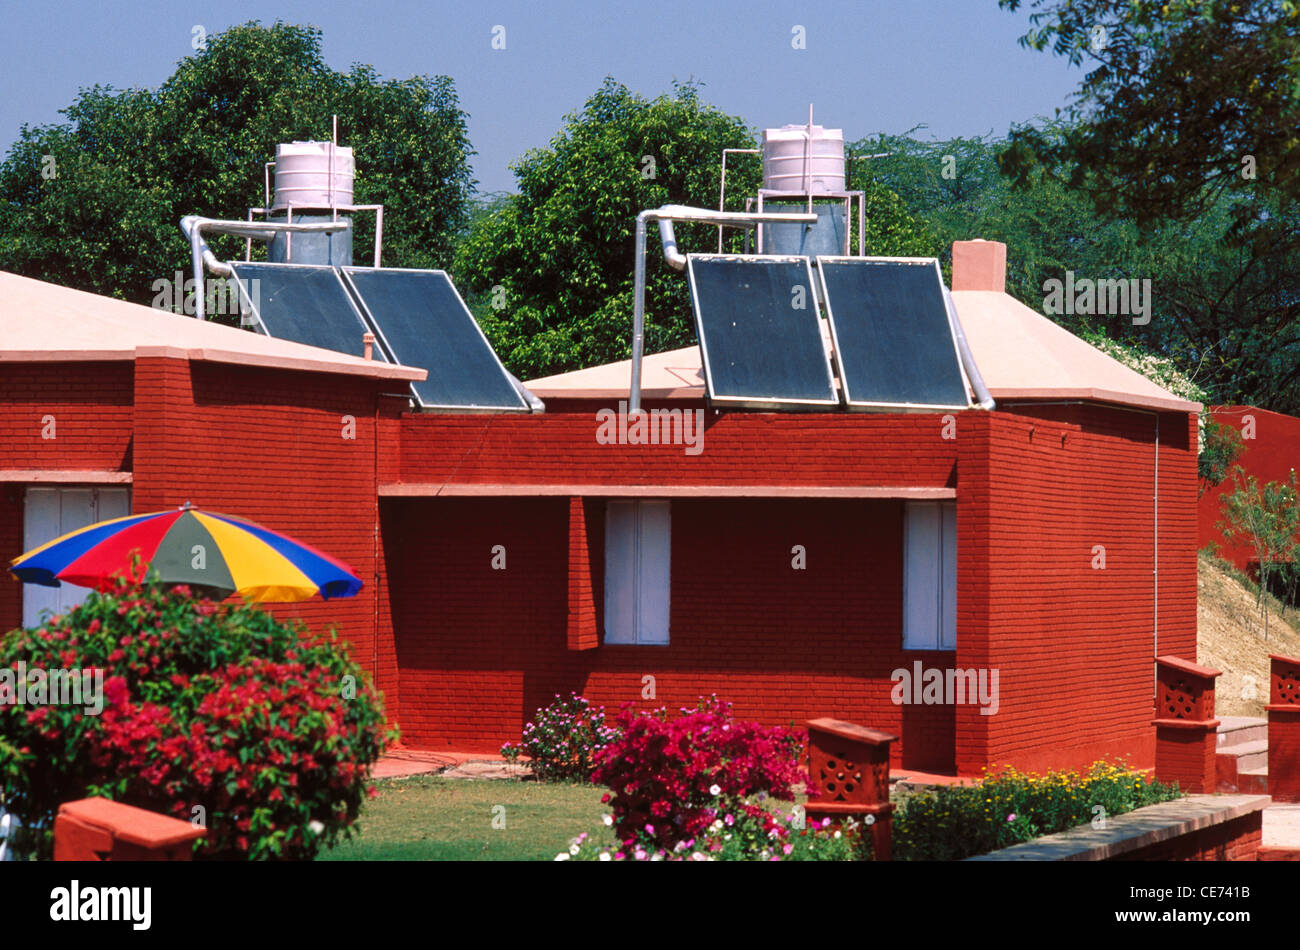 MBT 84479 : solar panels for water heater on top of bungalow agra uttar pradesh India - Stock Image